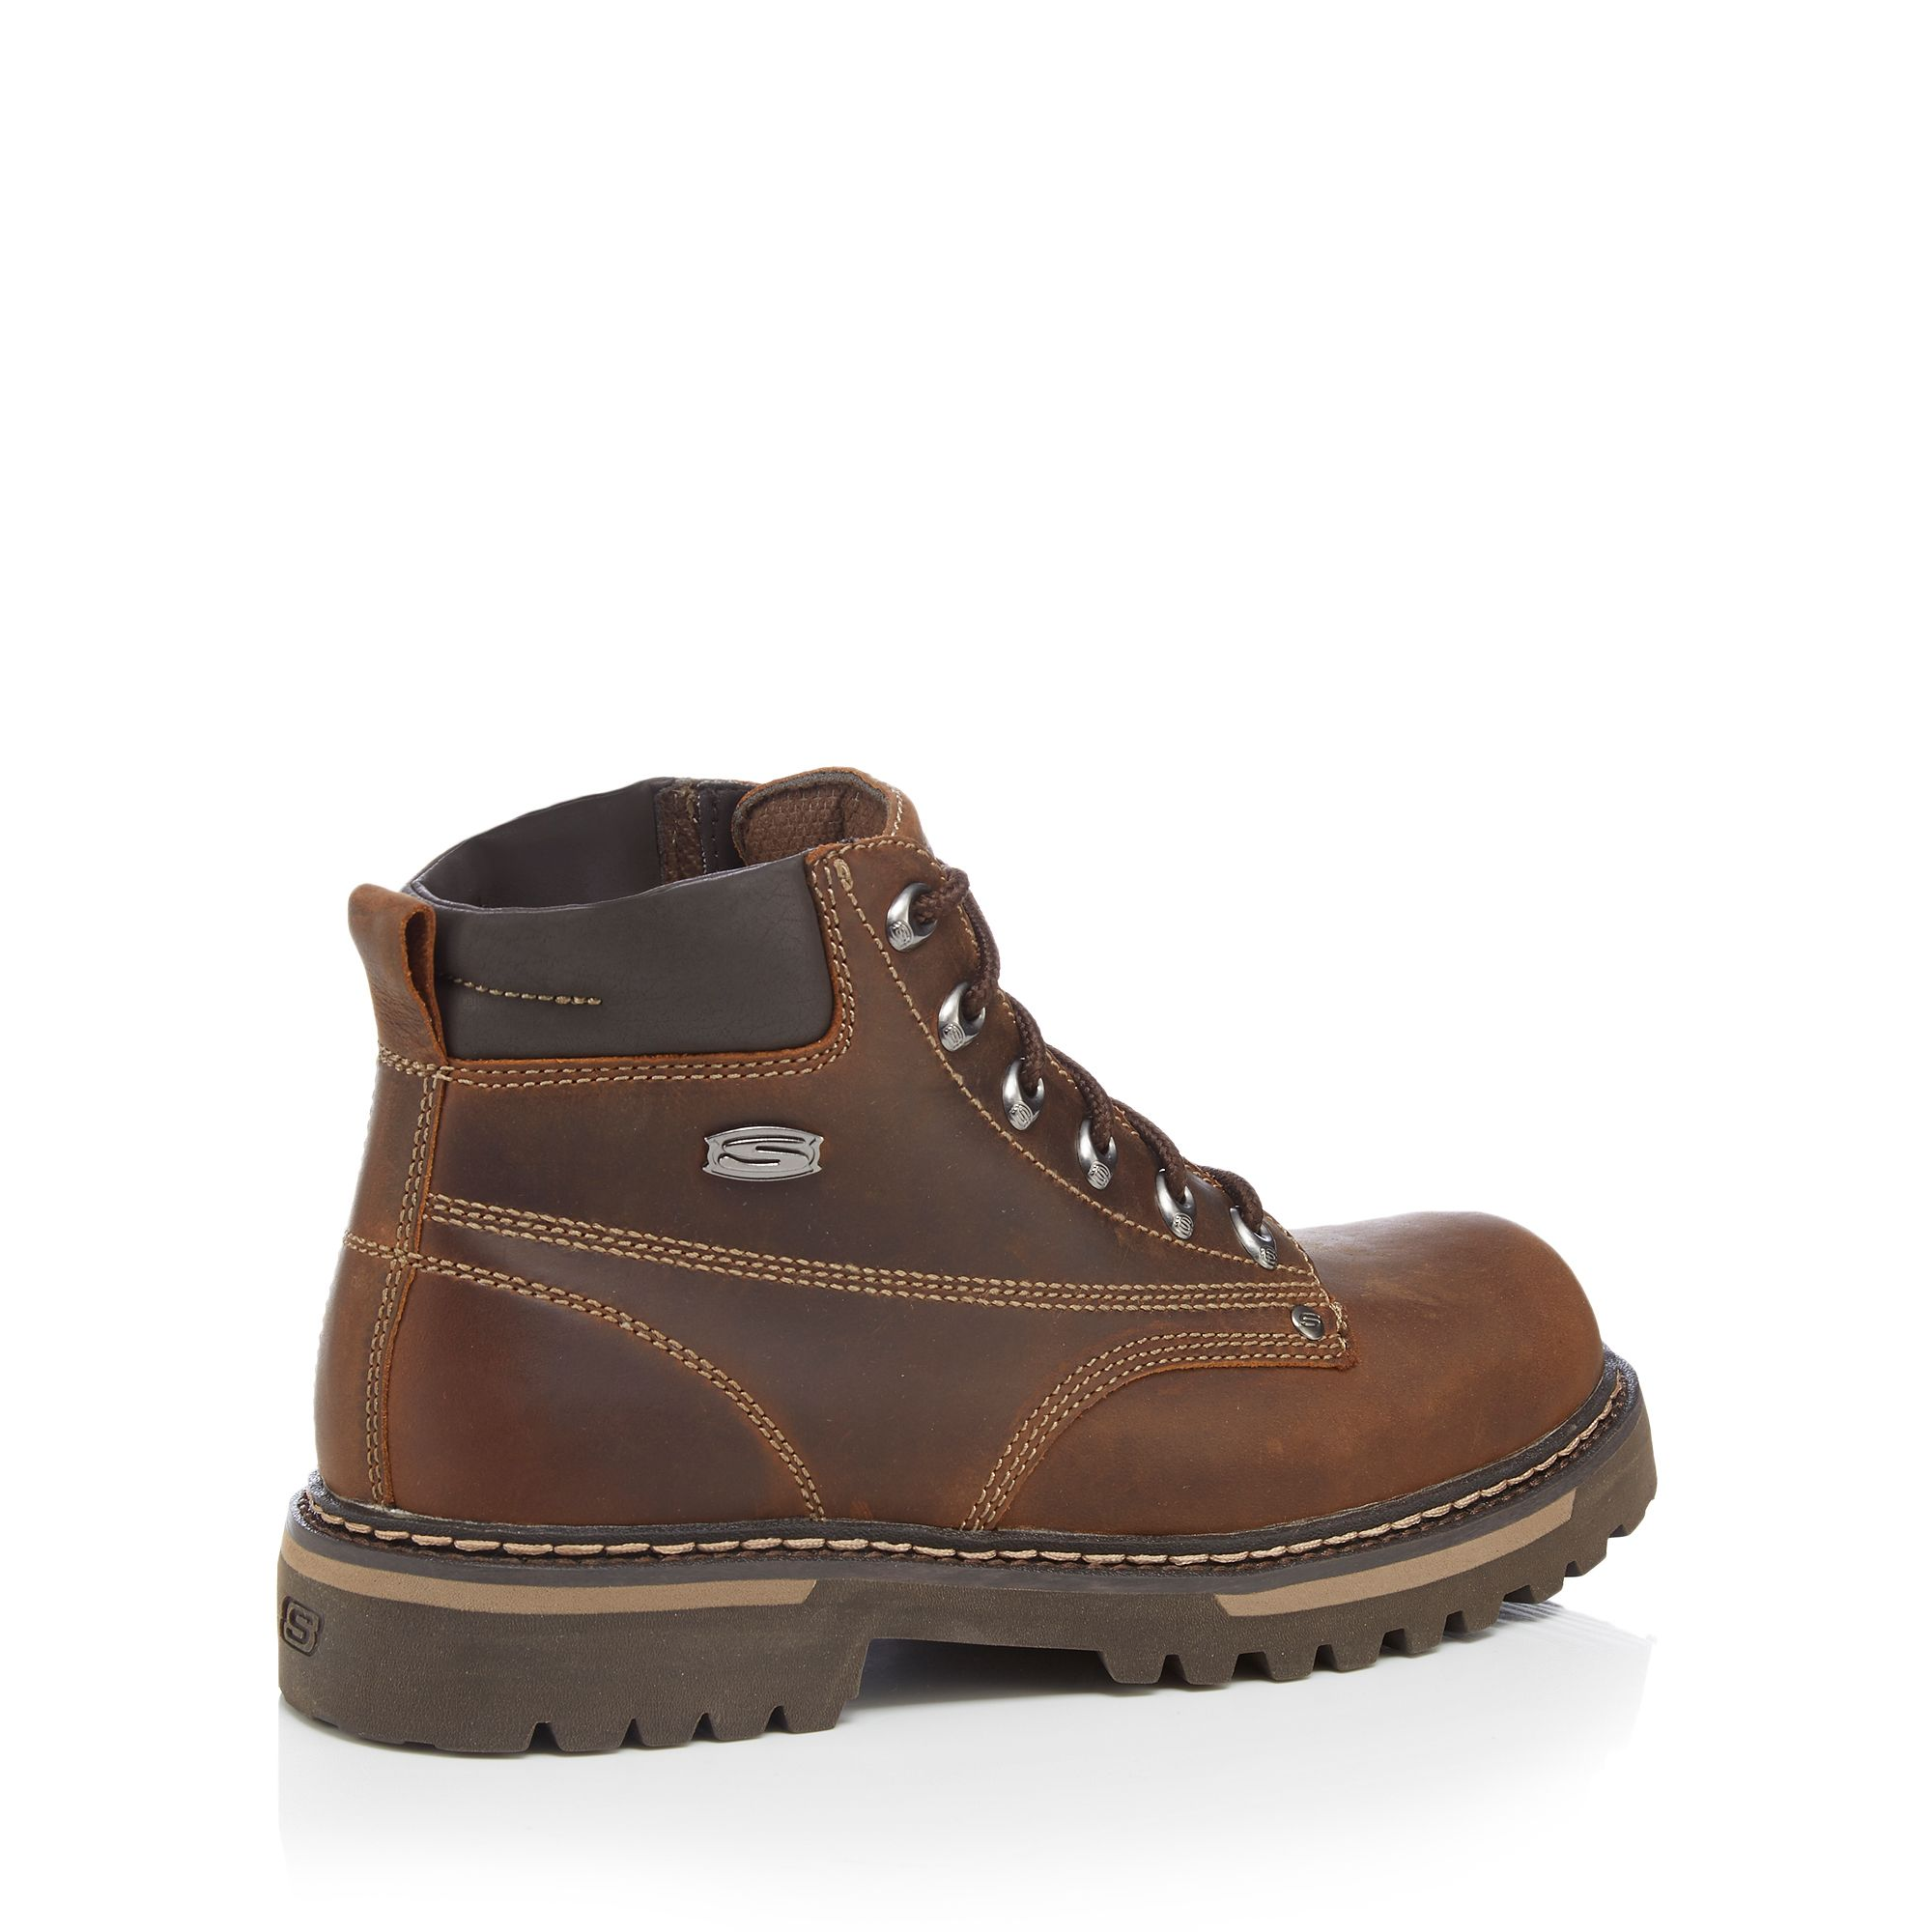 Skechers Brown Leather 'Bully Ii' Lace Up Boots From ...